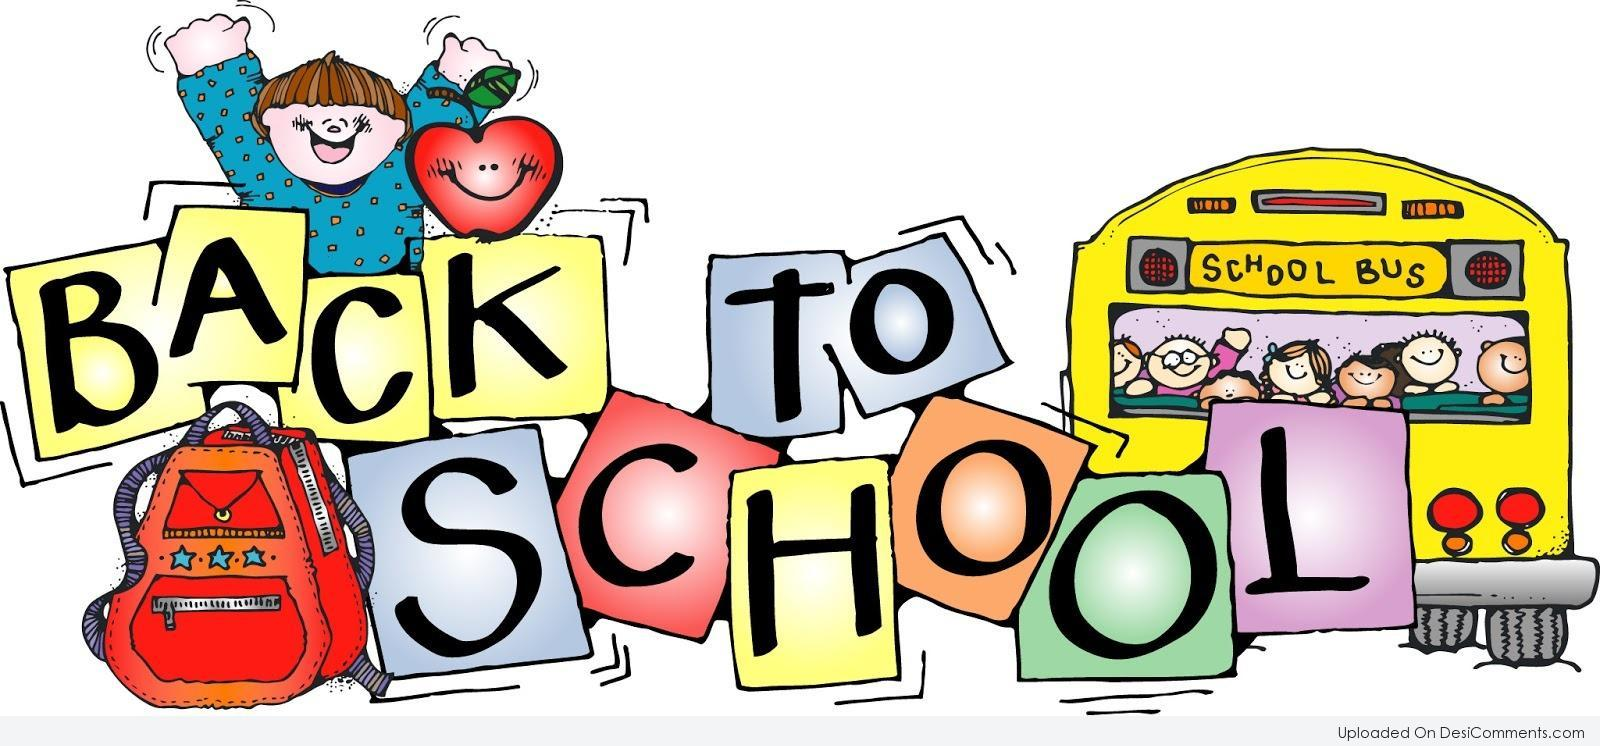 image-664487-back_to_school_clipart.jpg